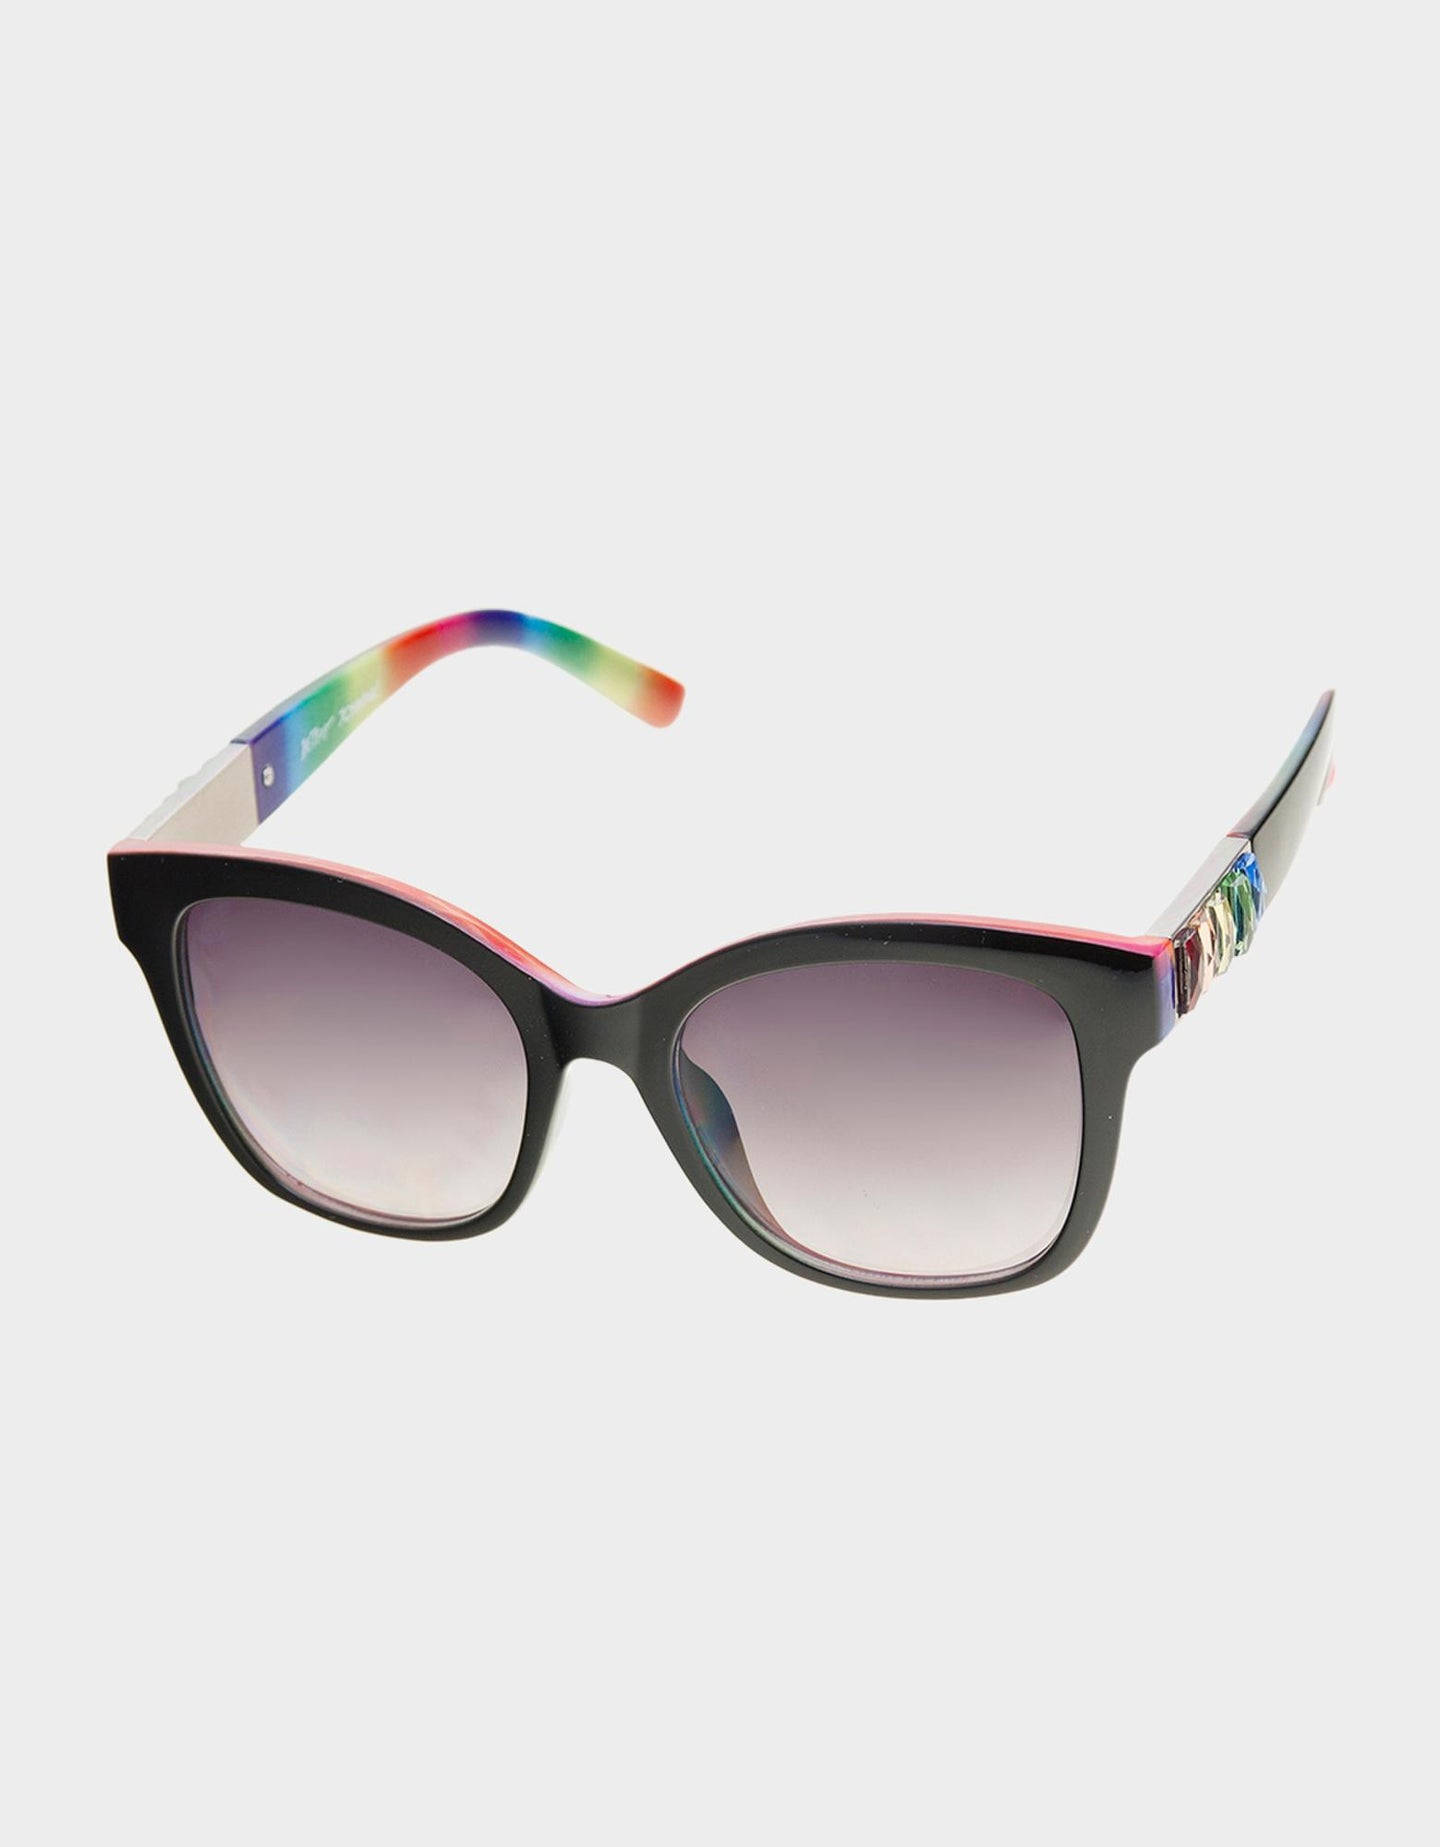 NOT SO BASIC SUNGLASSES BLACK - ACCESSORIES - Betsey Johnson